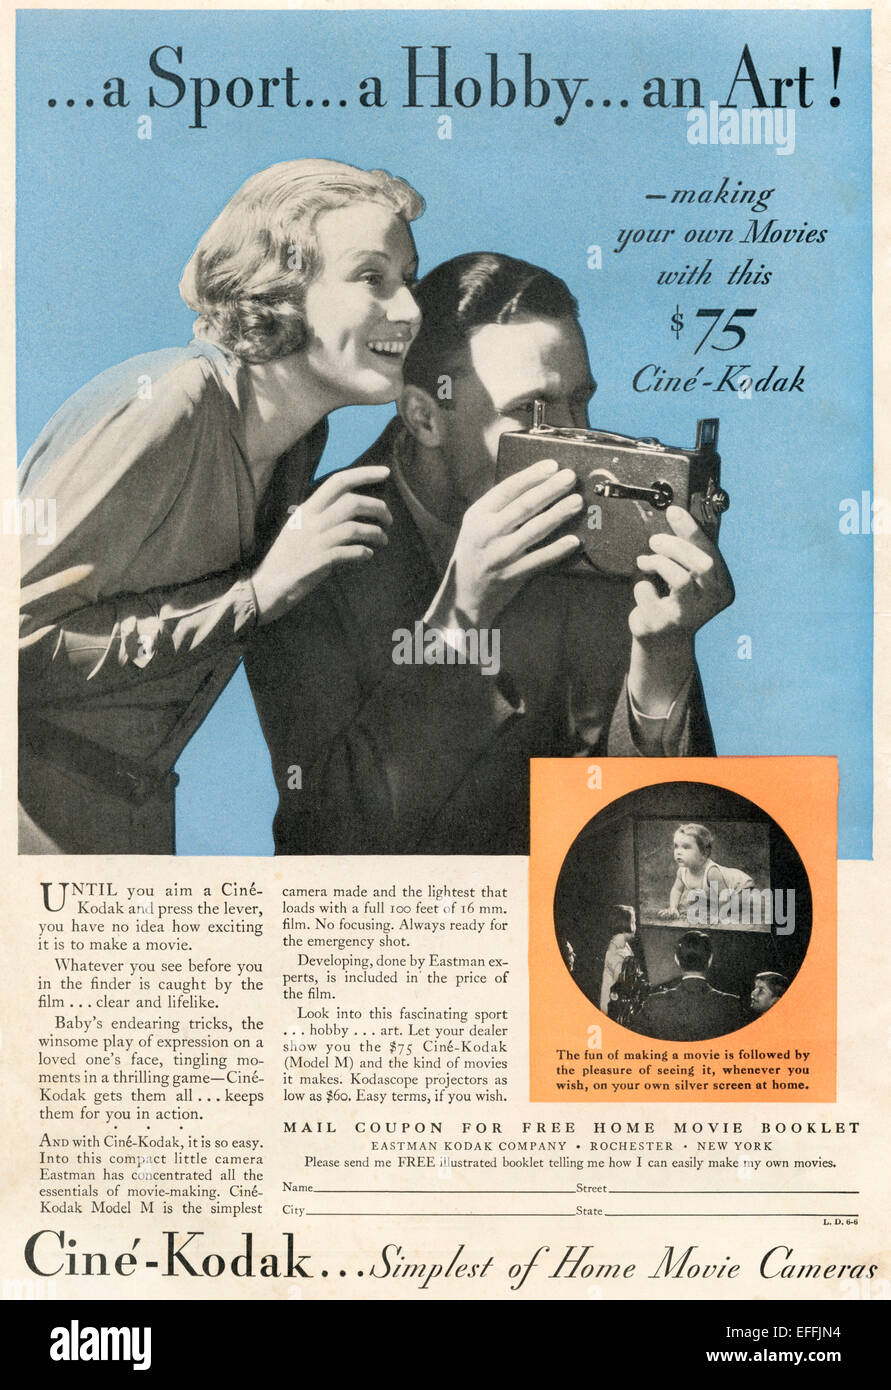 1930's American advertisement for the Ciné-Kodak Home Movie Camera. - Stock Image